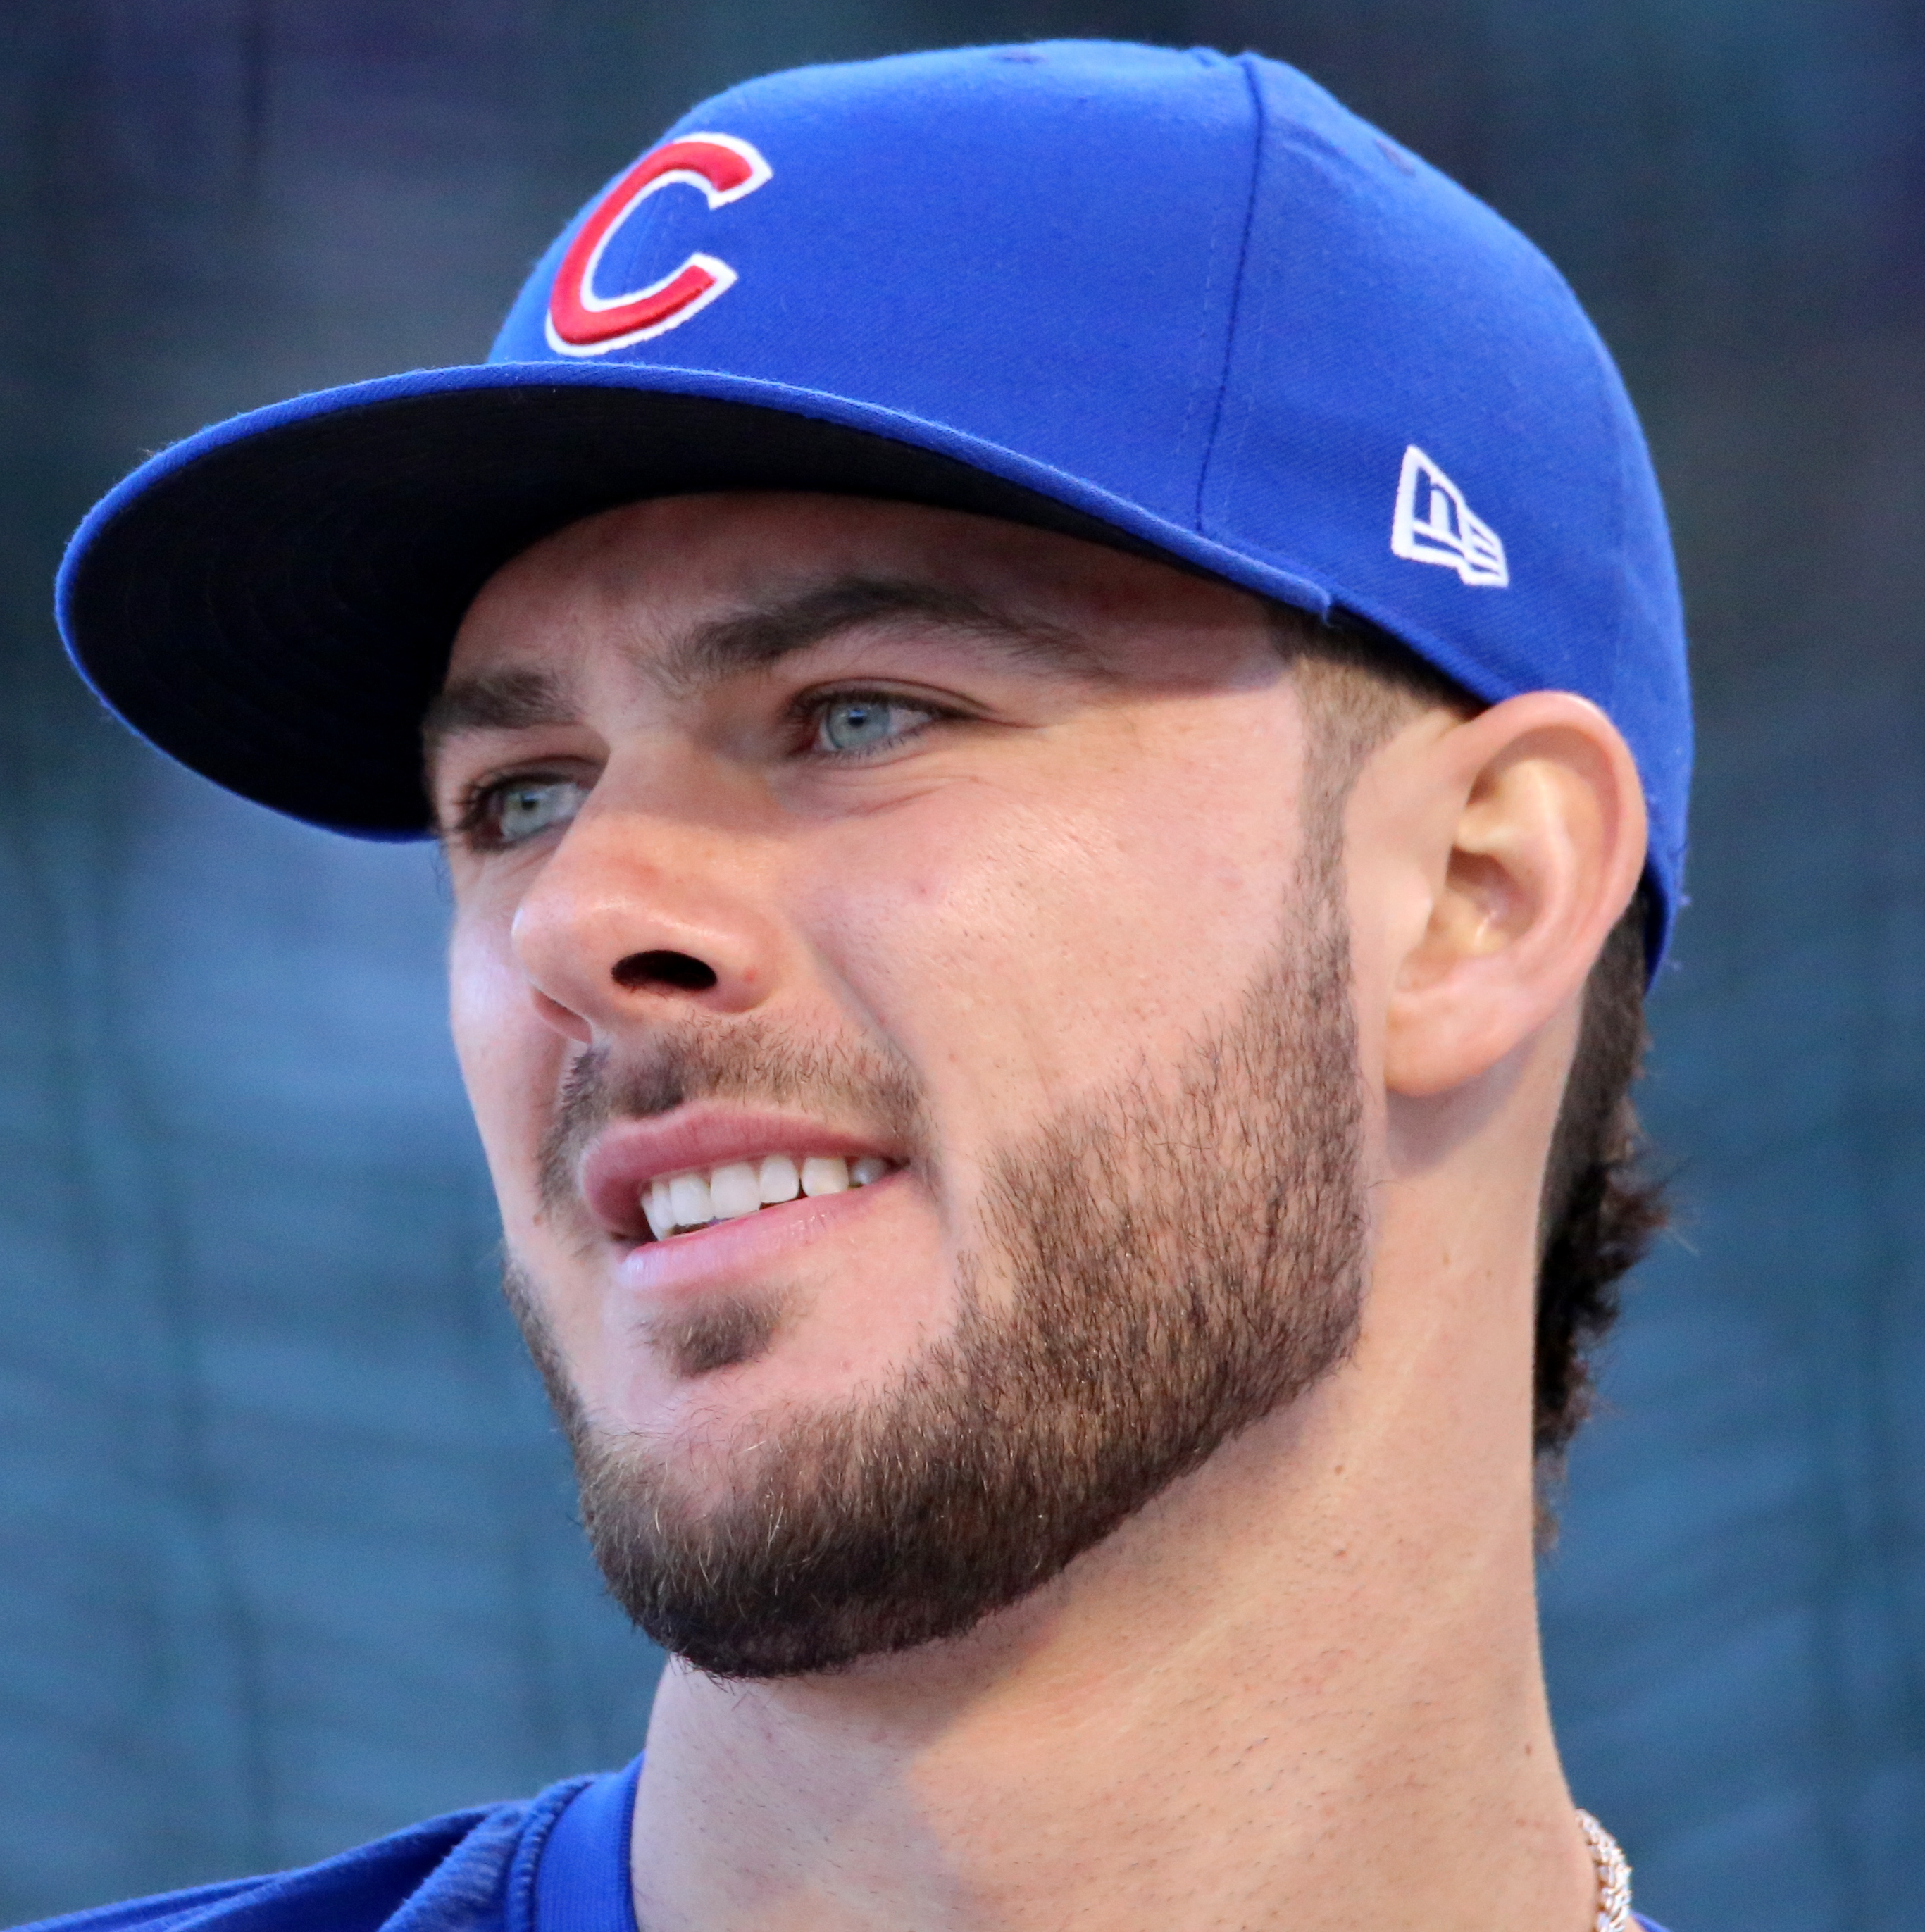 August 18, 2019 -- The Cubs are predicted to beat the Pirates on the road. The Cubs top hitter is Javier Baez and projected starting pitcher is Jose Quintana.